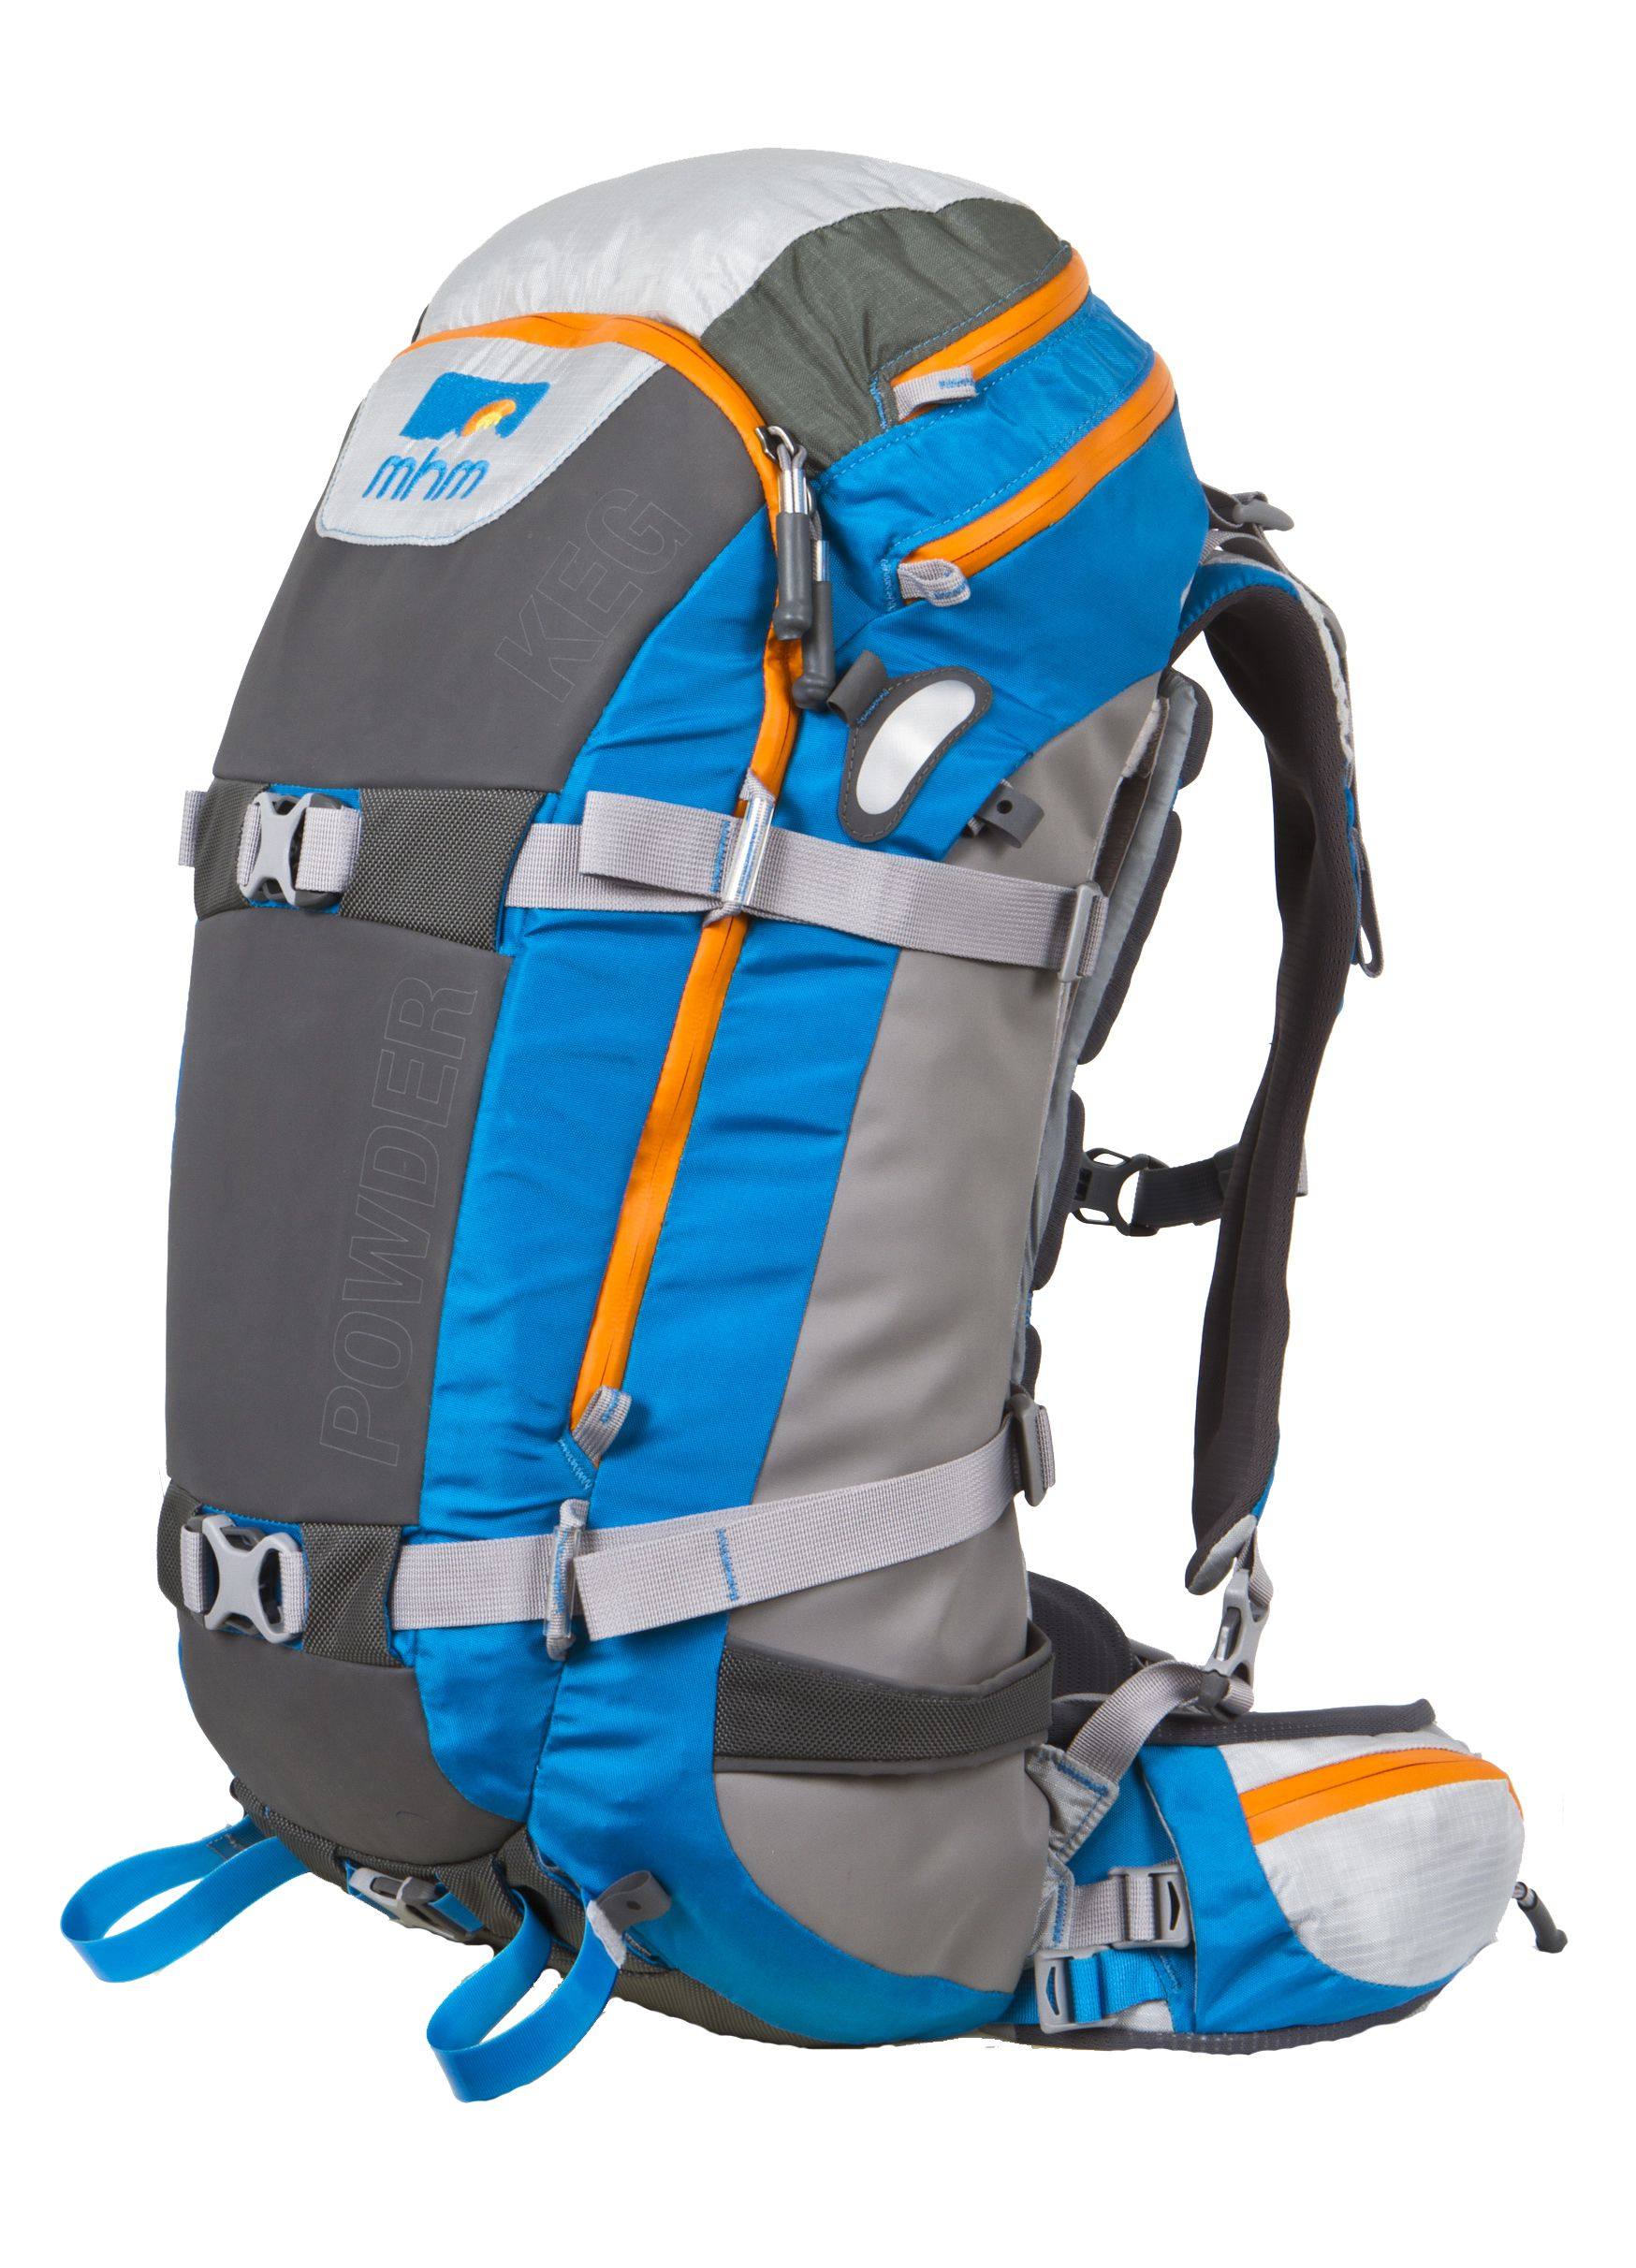 MHM POWDERKEG 32 Backpack- This backcountry snow pack features our ...